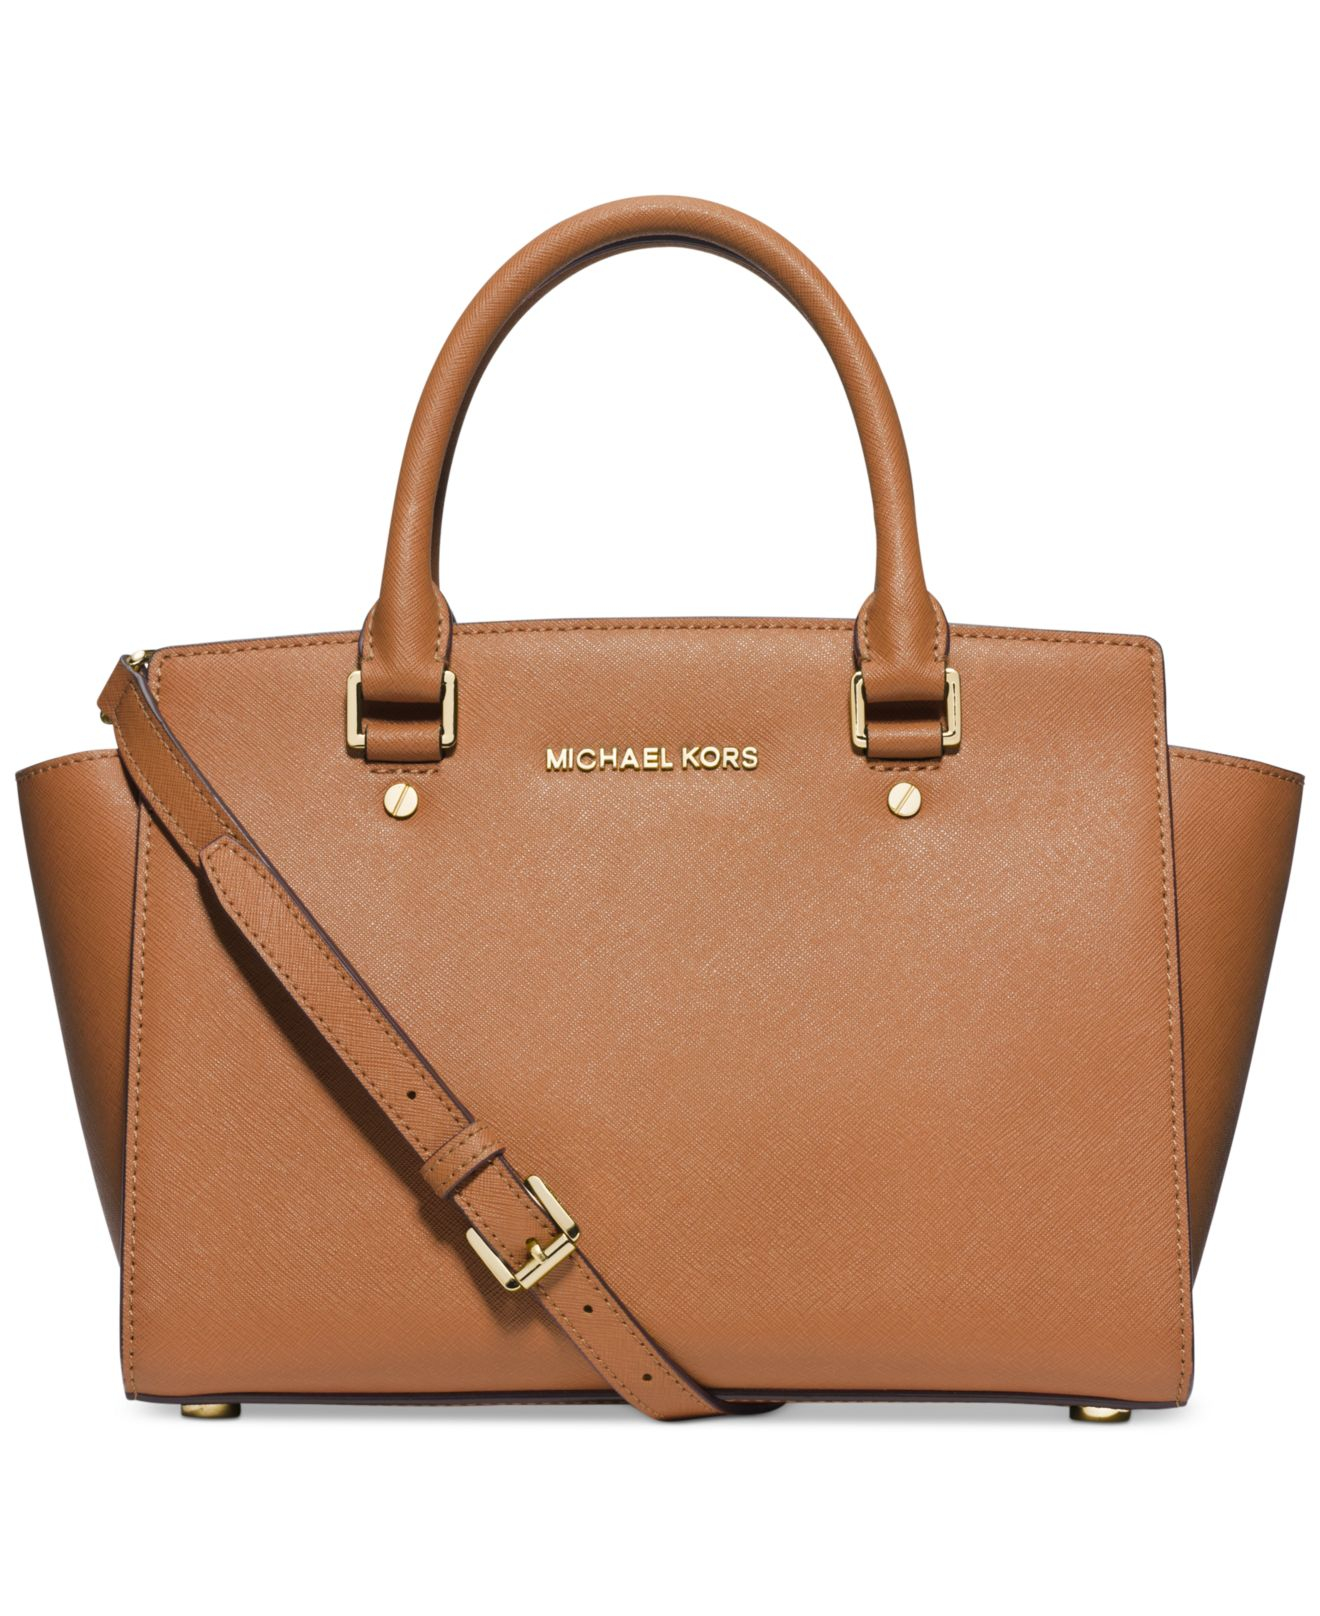 michael kors michael selma medium satchel in brown lyst. Black Bedroom Furniture Sets. Home Design Ideas